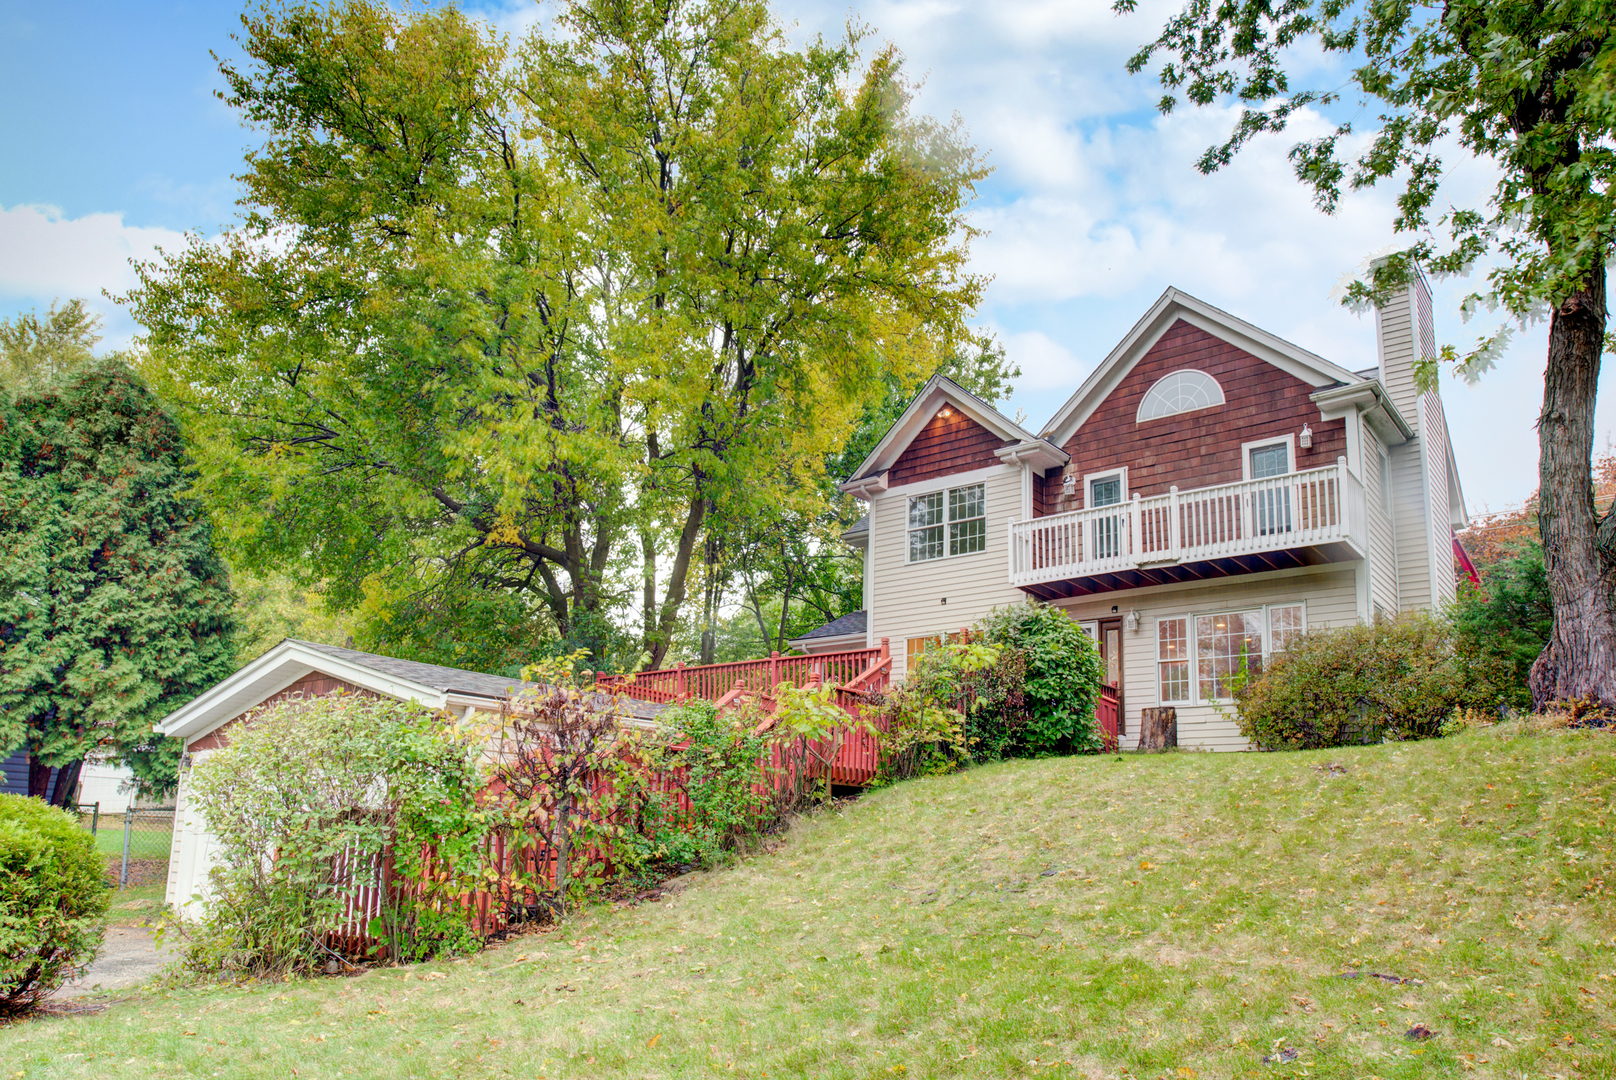 Photo for 1001 Burr Street, Lake In The Hills, IL 60156 (MLS # 10907071)